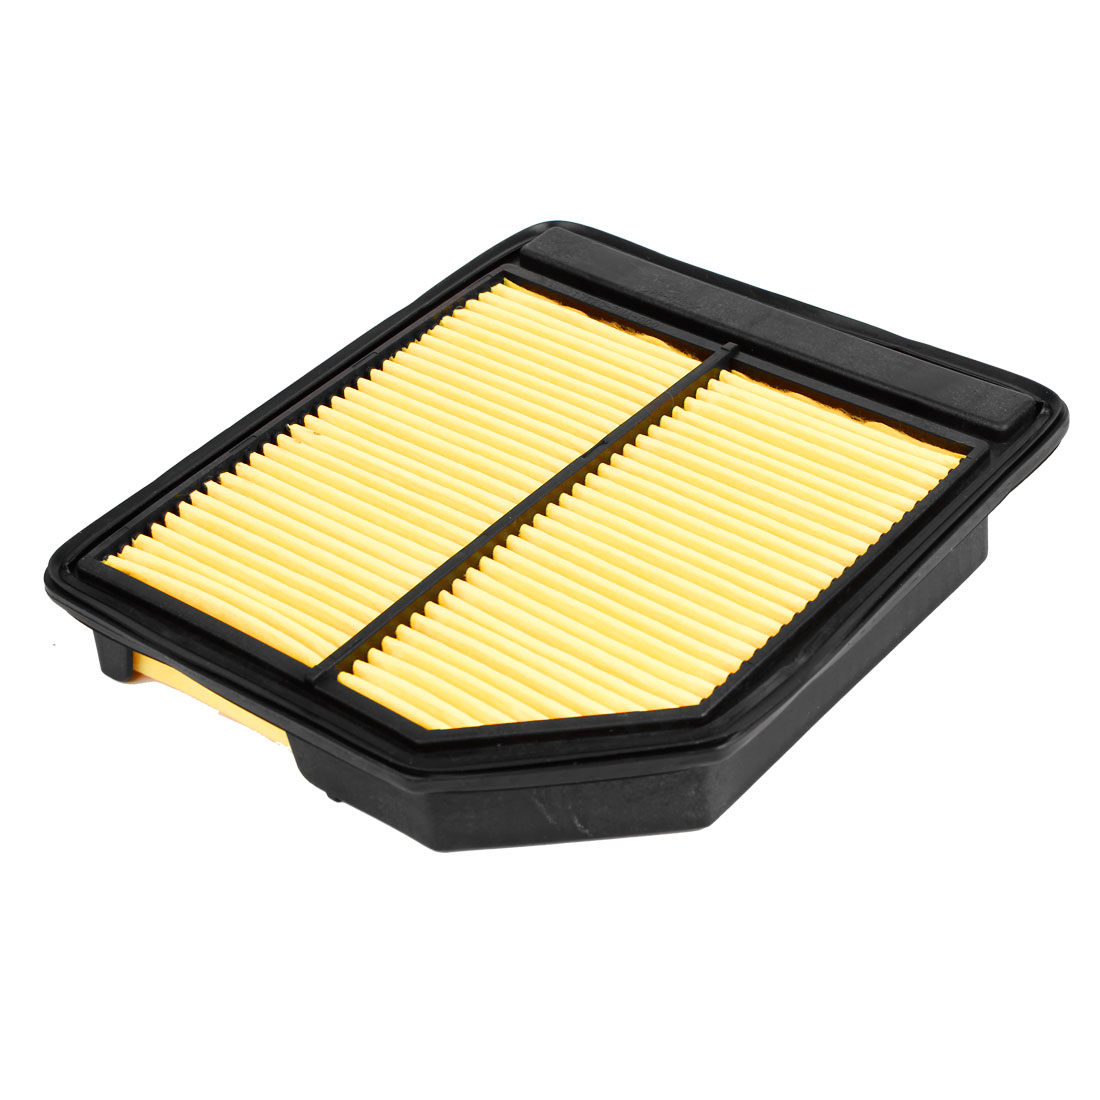 17220-RNA-A00 Plastic Frame Engine Air Filter Assembly for Car